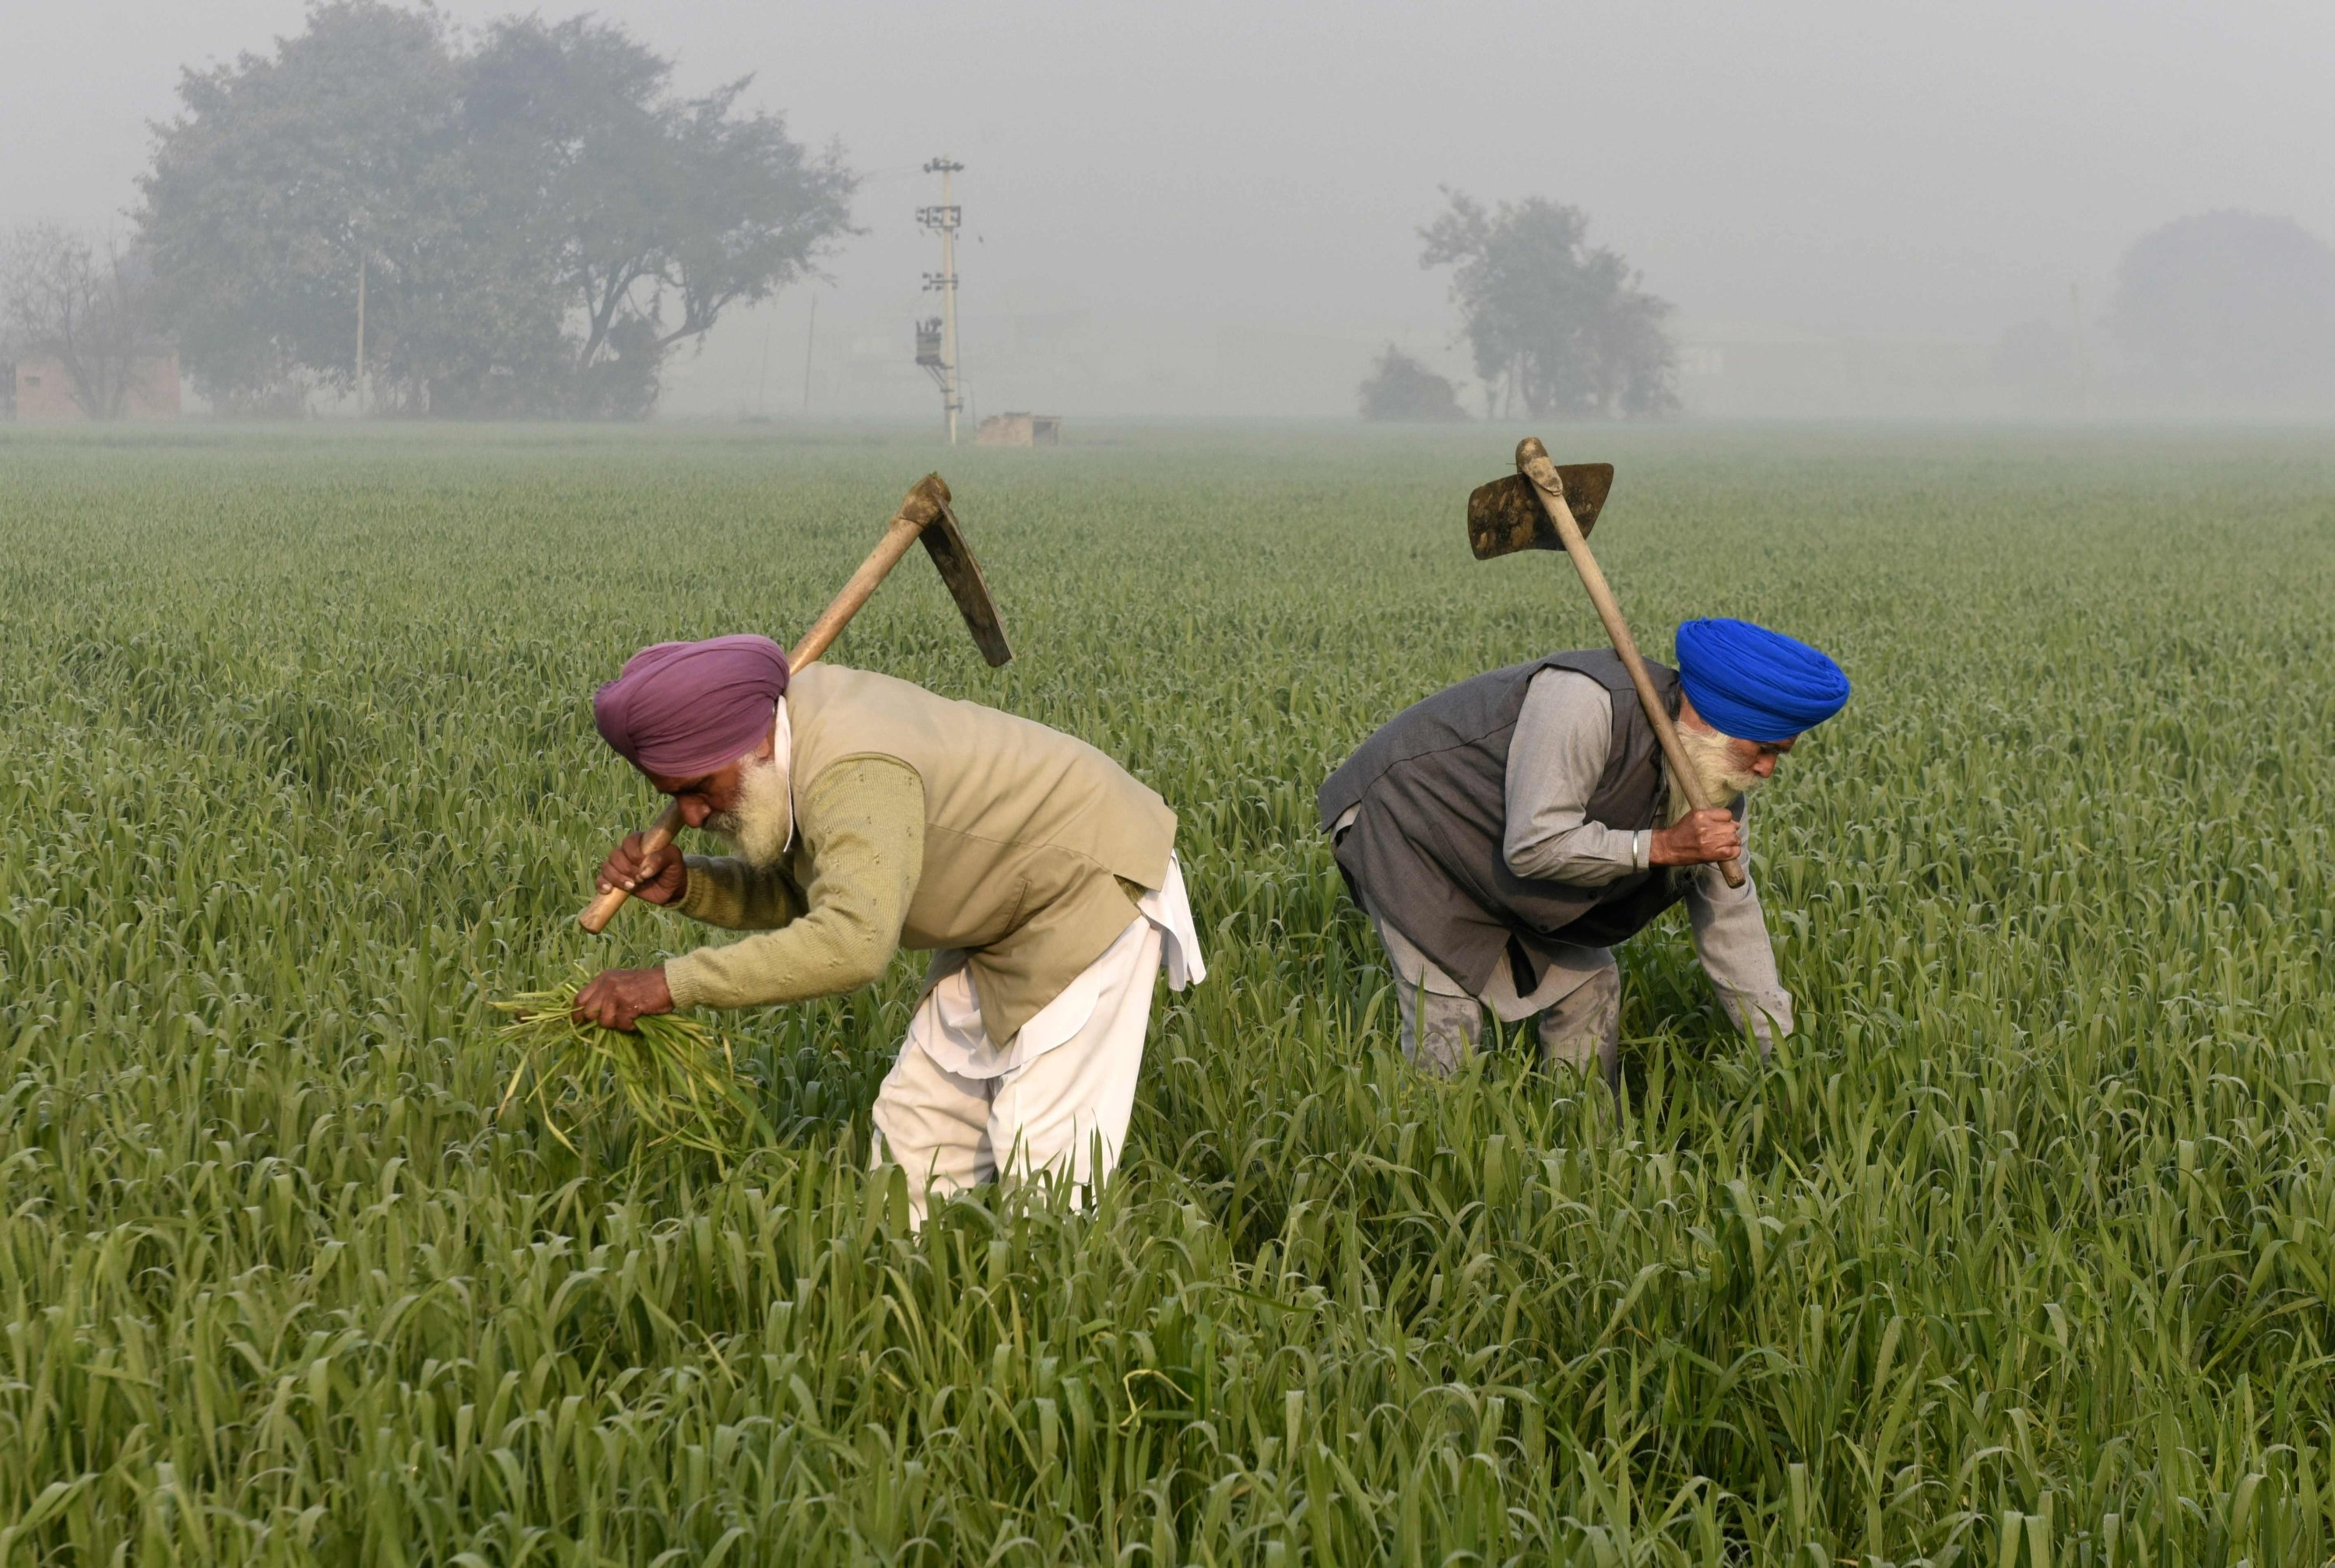 Farmers work in a field on the outskirts of Amritsar, India, Feb. 1, 2021. (AFP Photo)